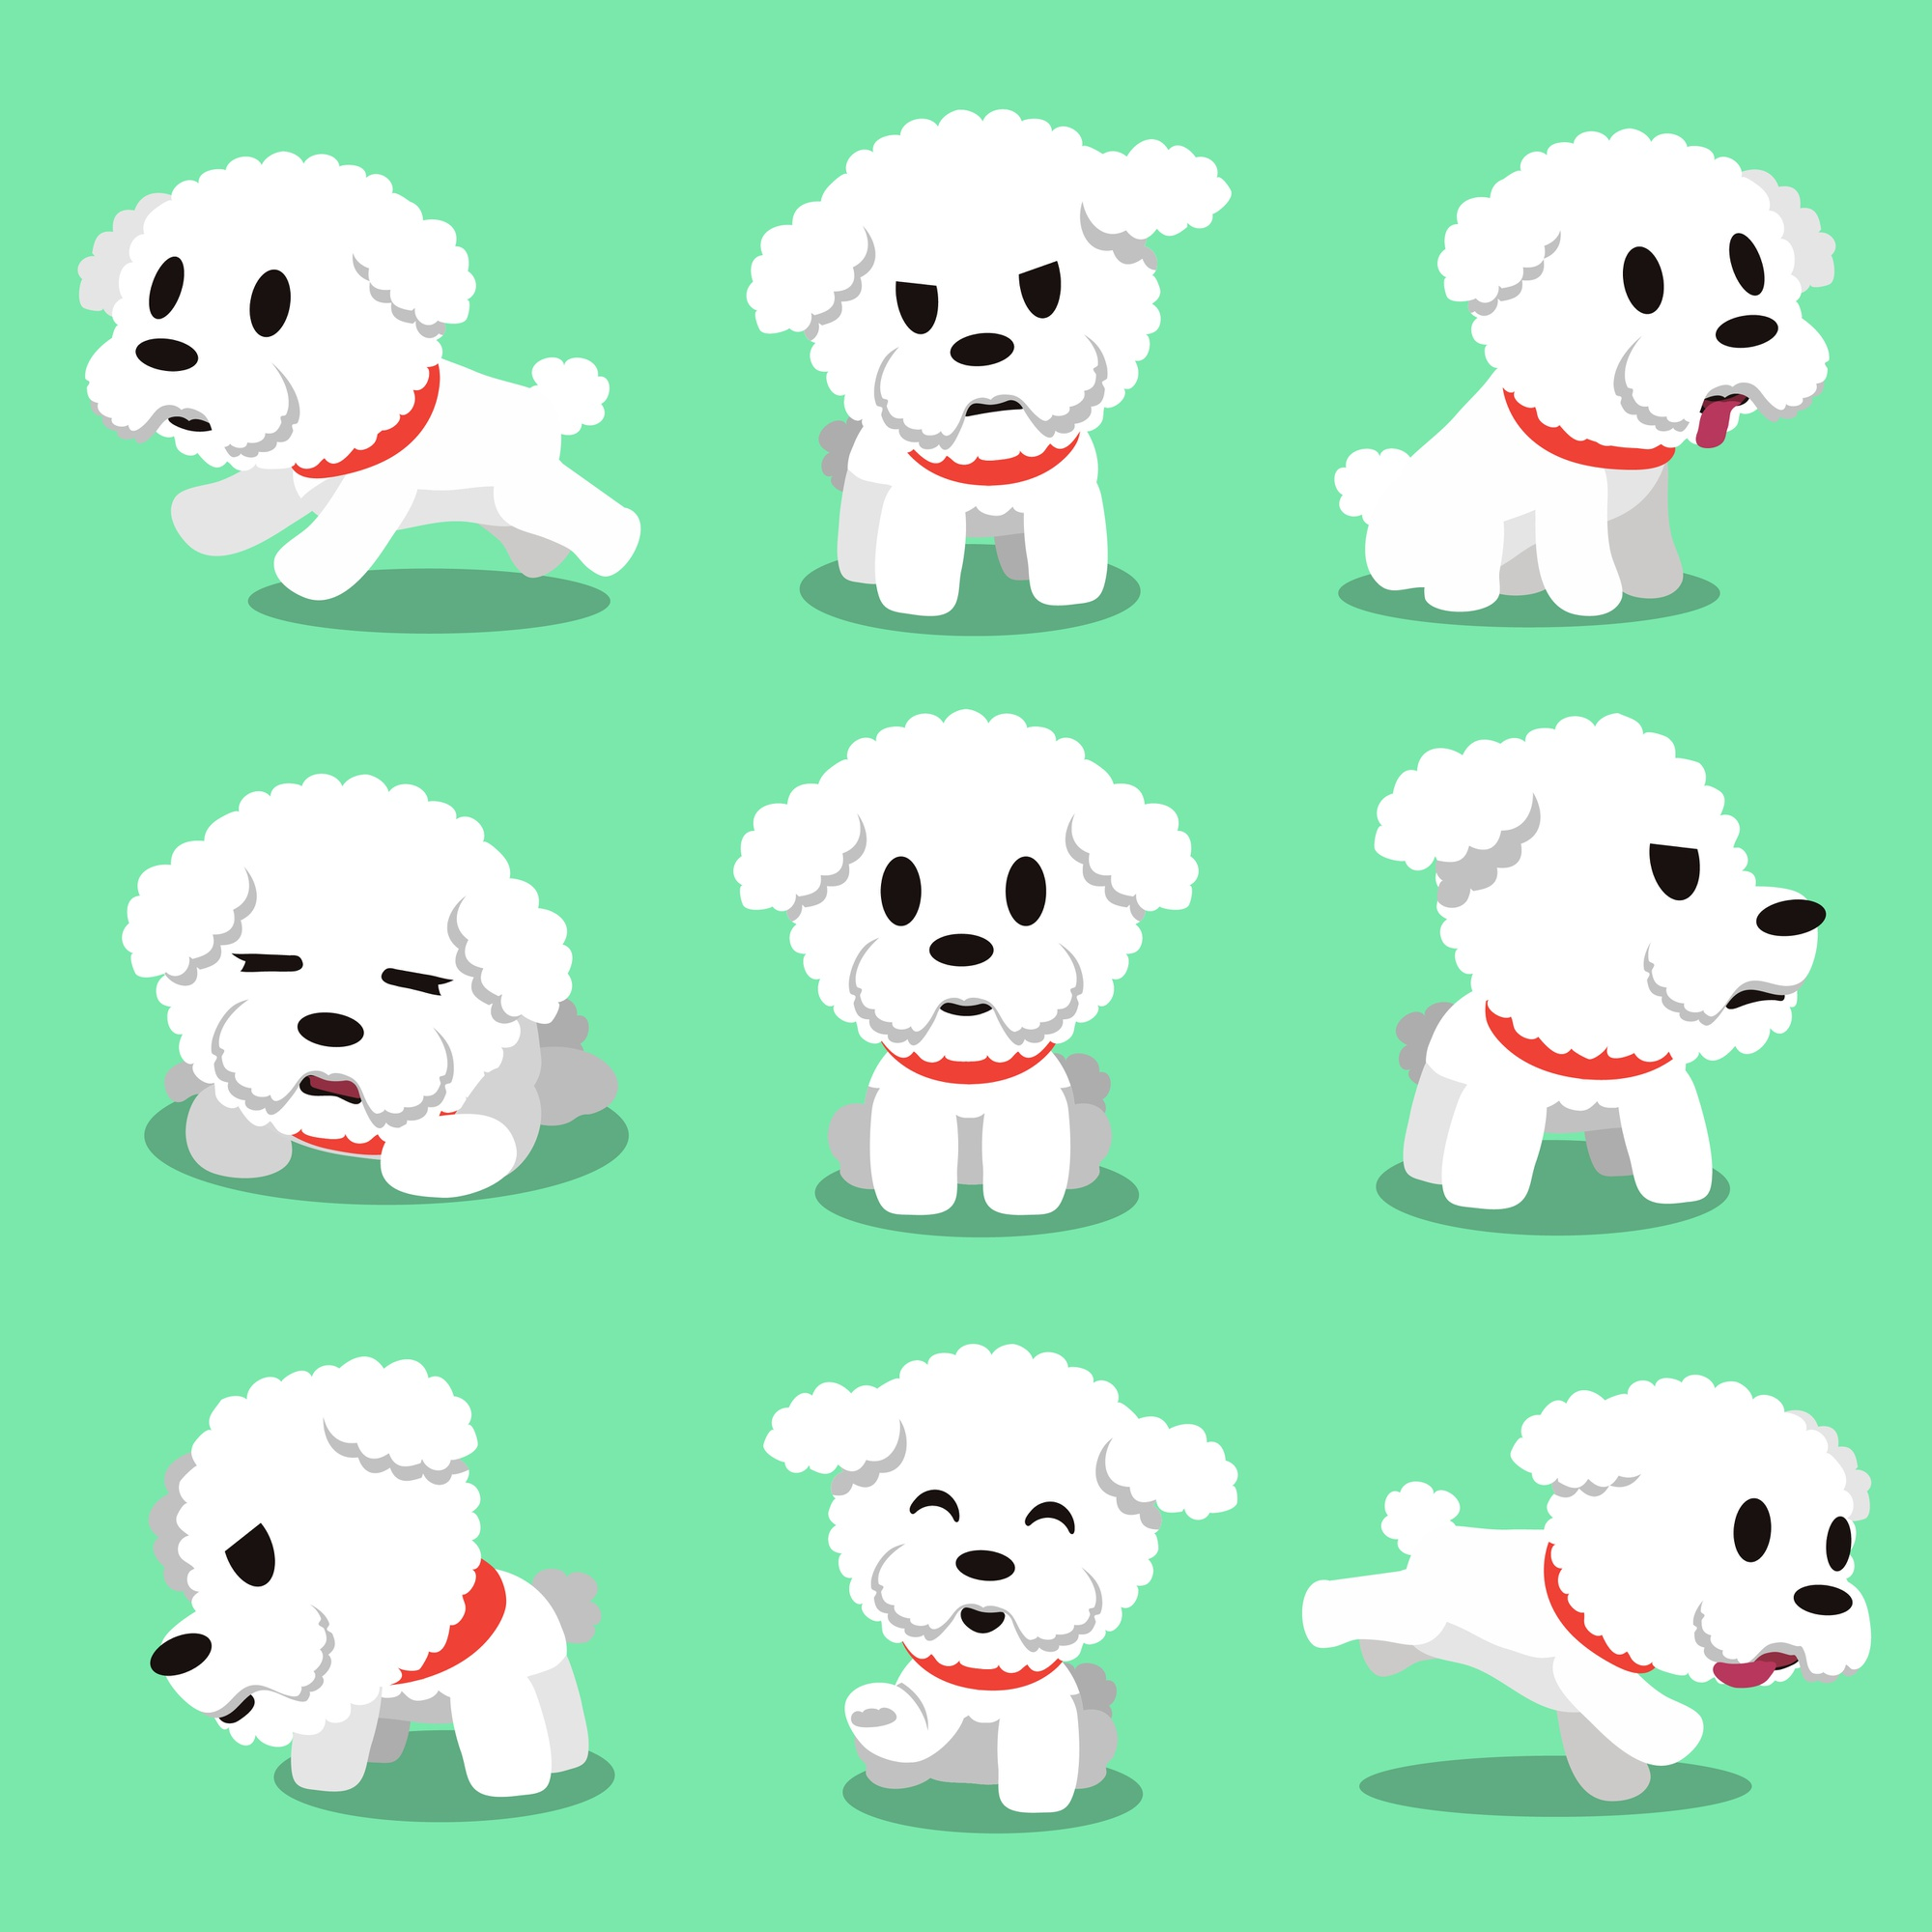 Cartoon character bichon frise dog poses